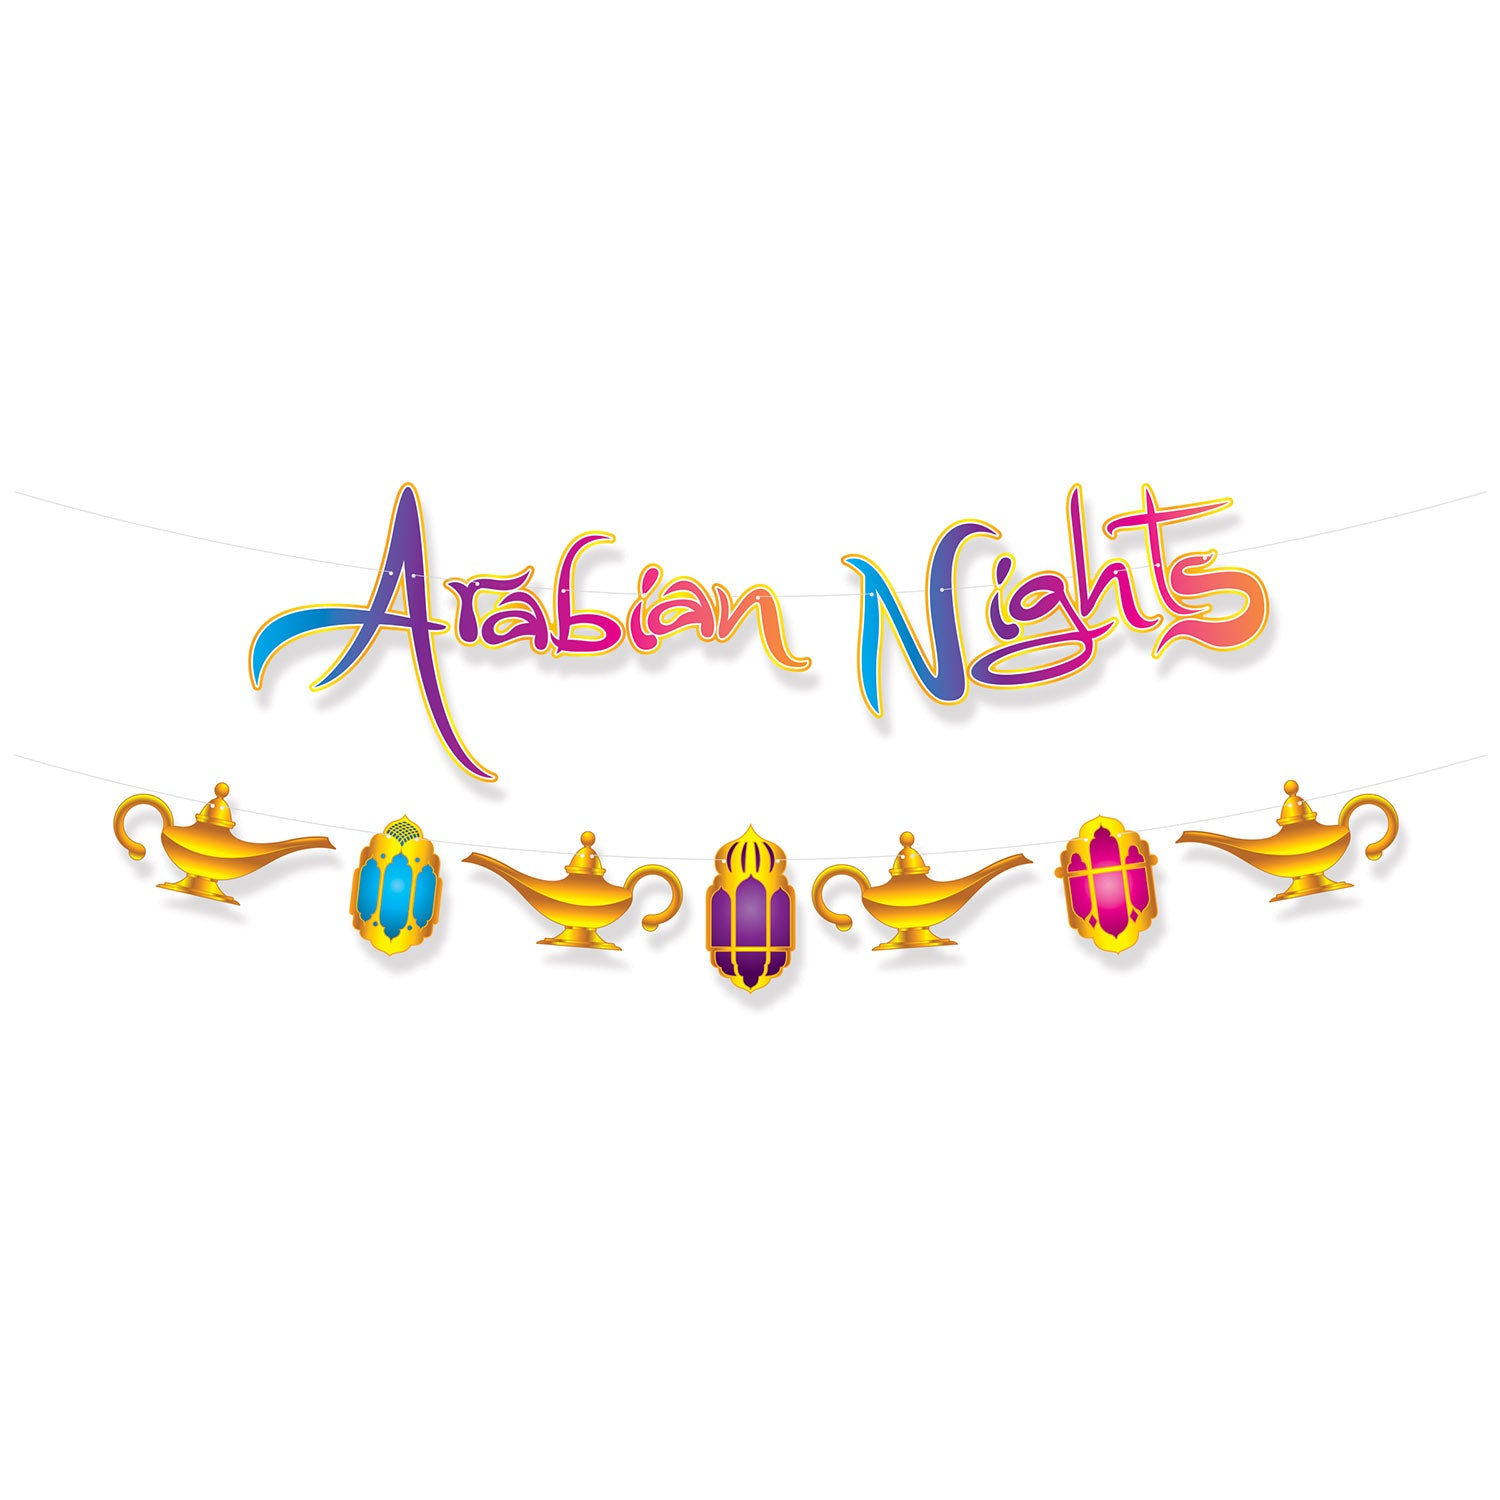 Arabian Nights Streamer Set by Beistle - Arabian Nights Theme Decorations